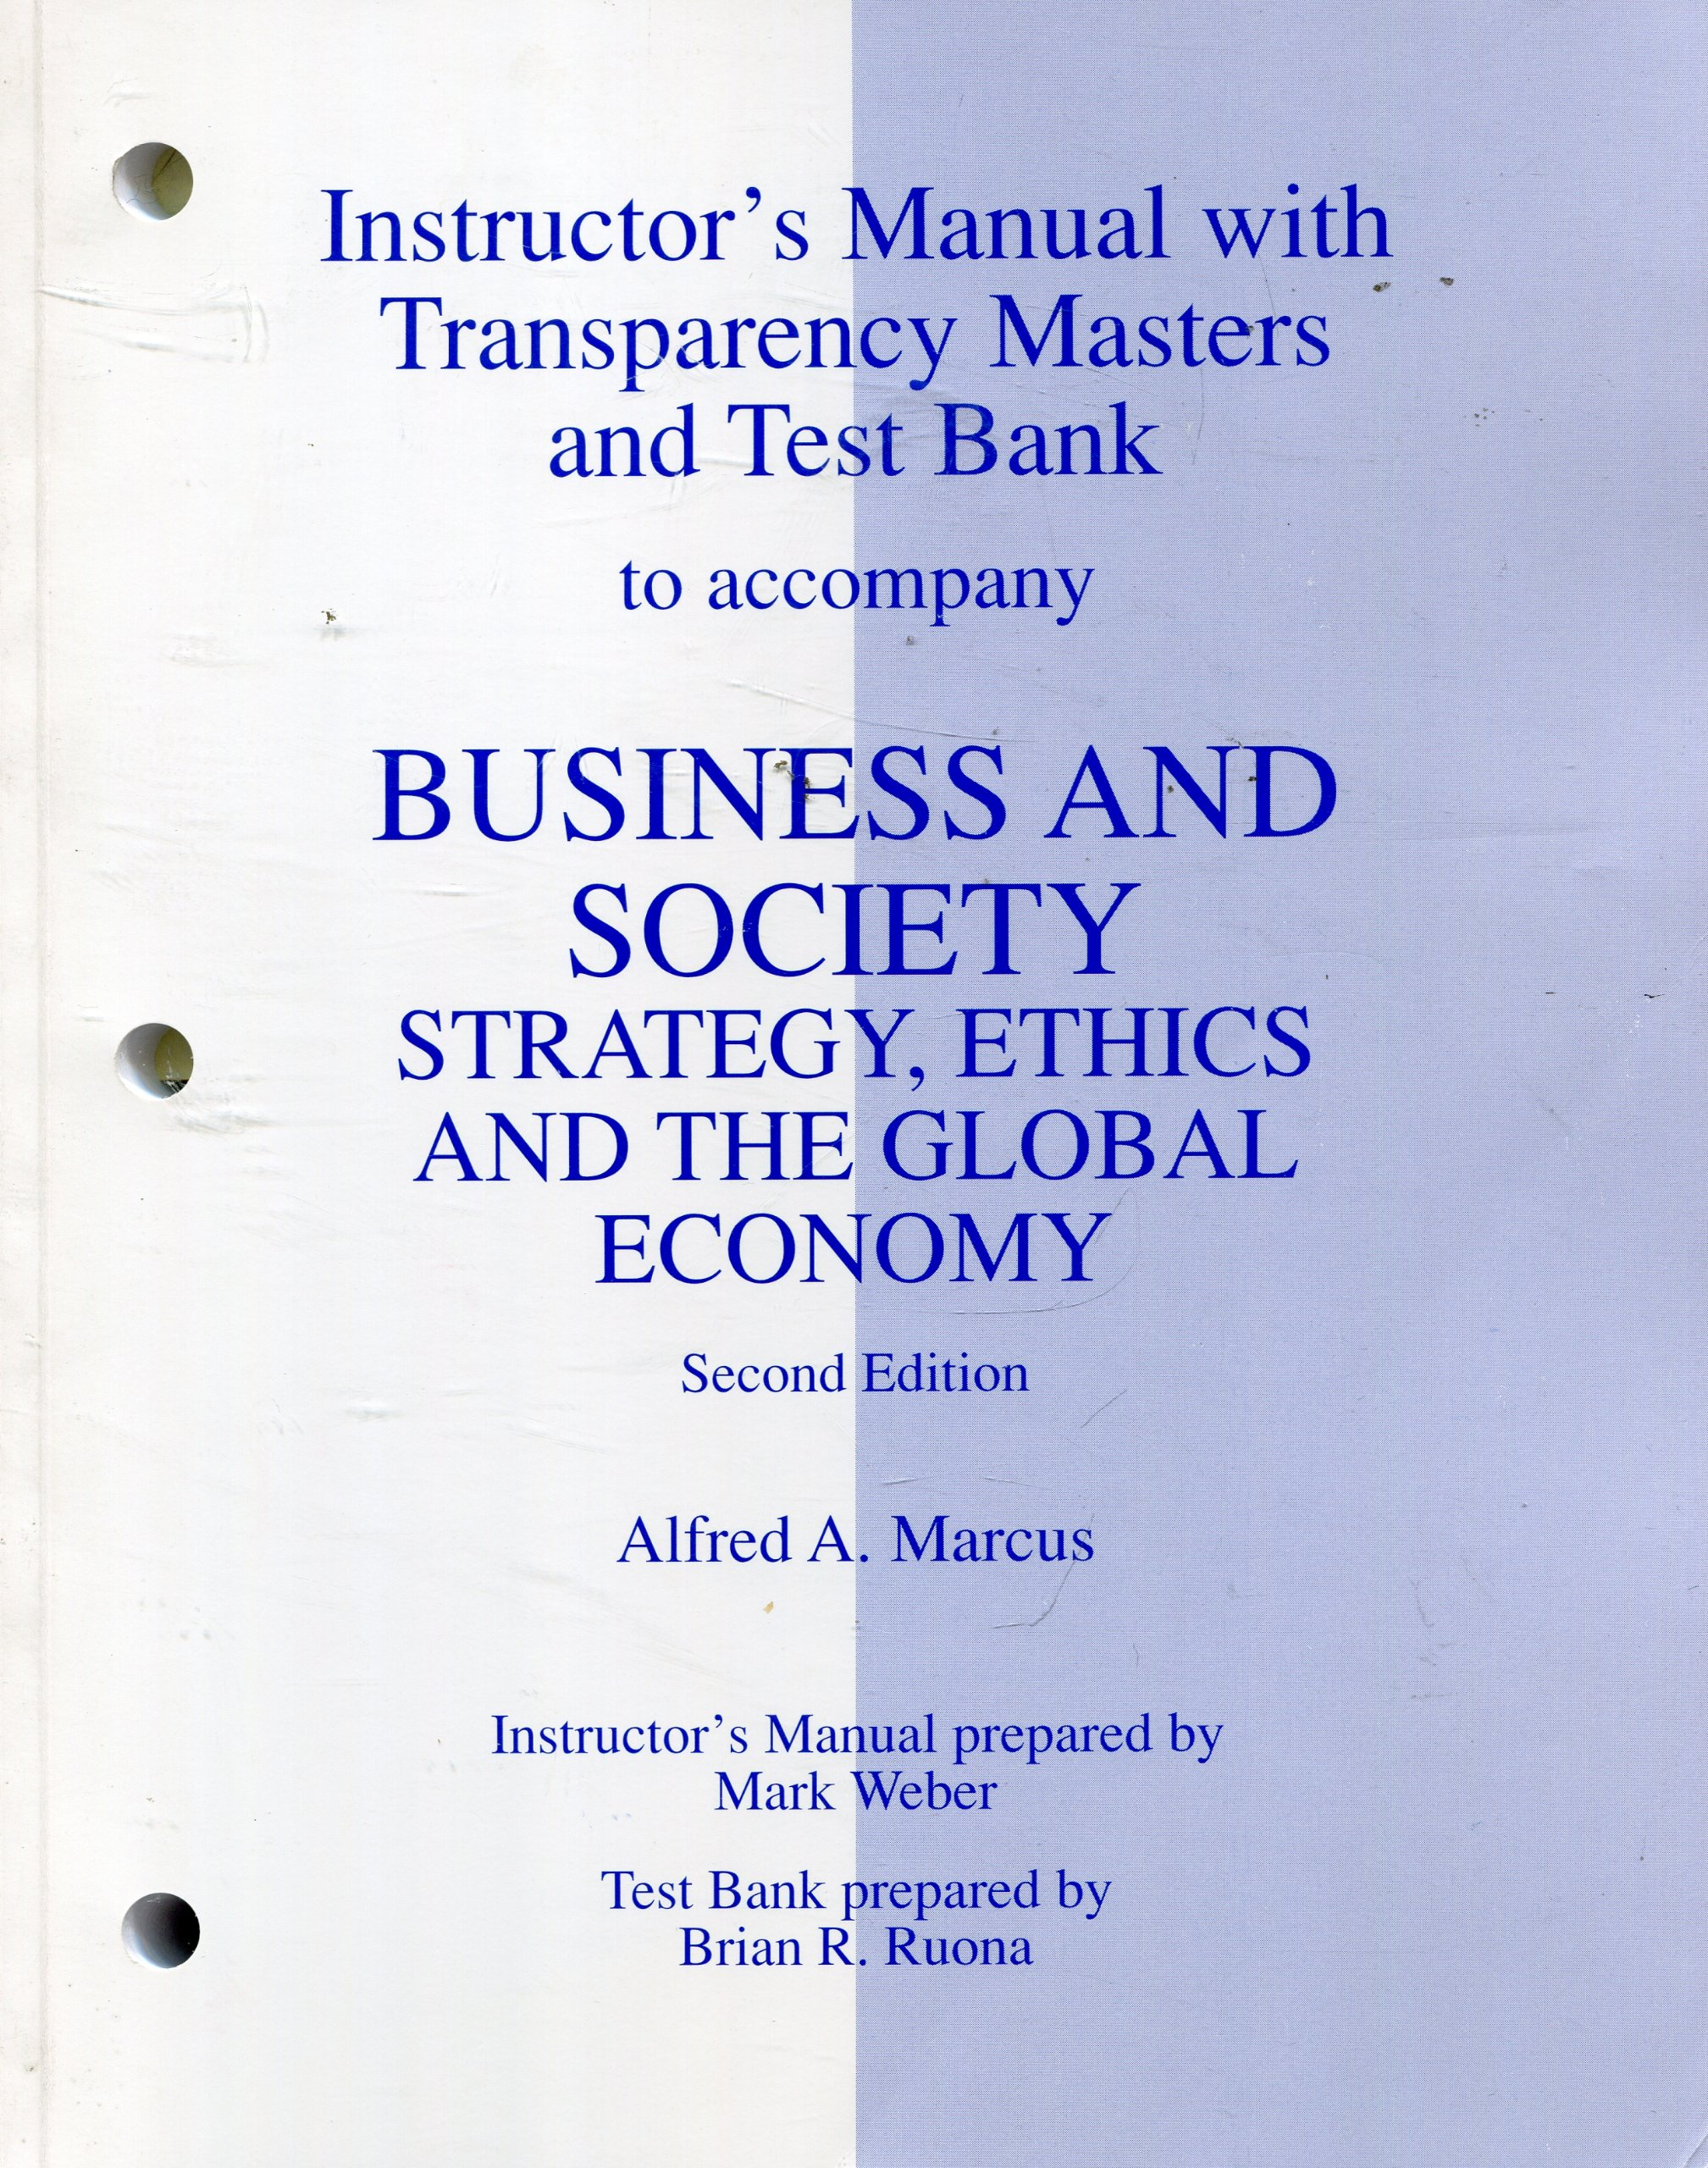 Buy Instructor's Manual: Im Business and Society Book Online at Low Prices  in India   Instructor's Manual: Im Business and Society Reviews & Ratings  ...